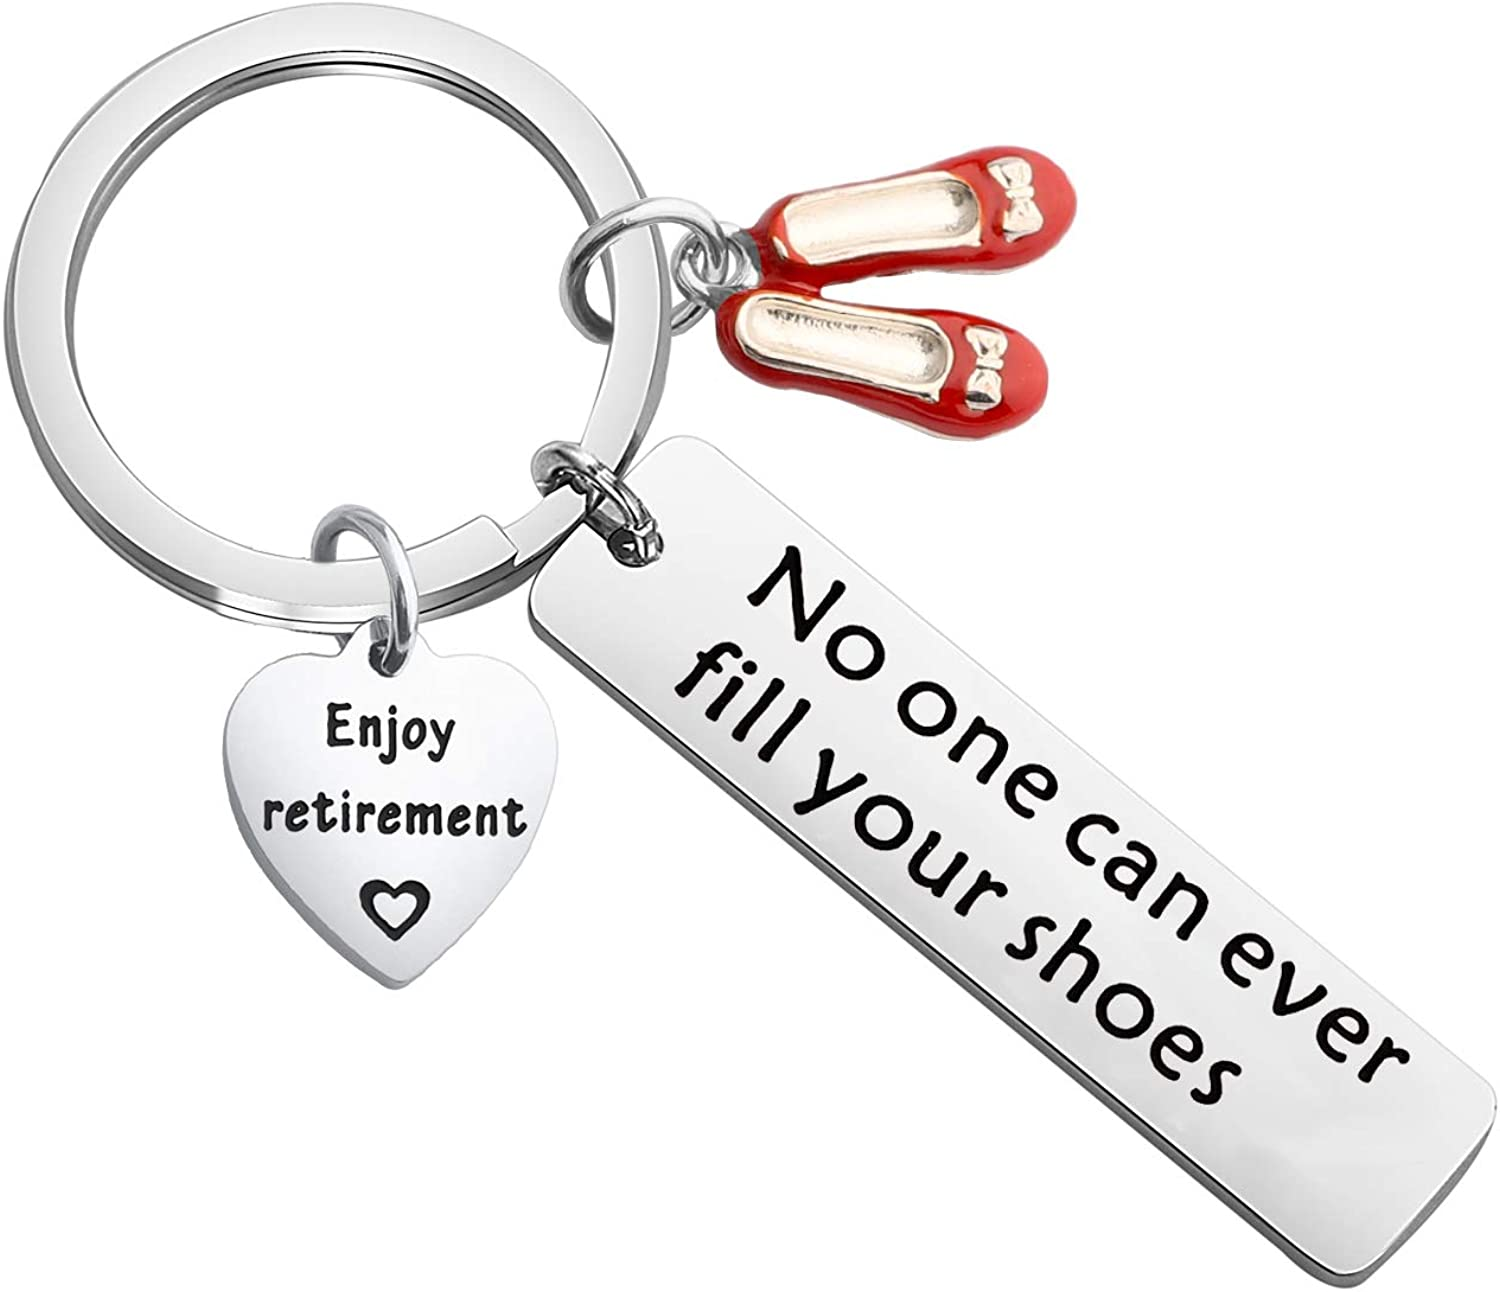 bobauna Enjoy Retirememnt Keychain No One Can Cheap super special price Fill Limited time sale Your Ever Sho